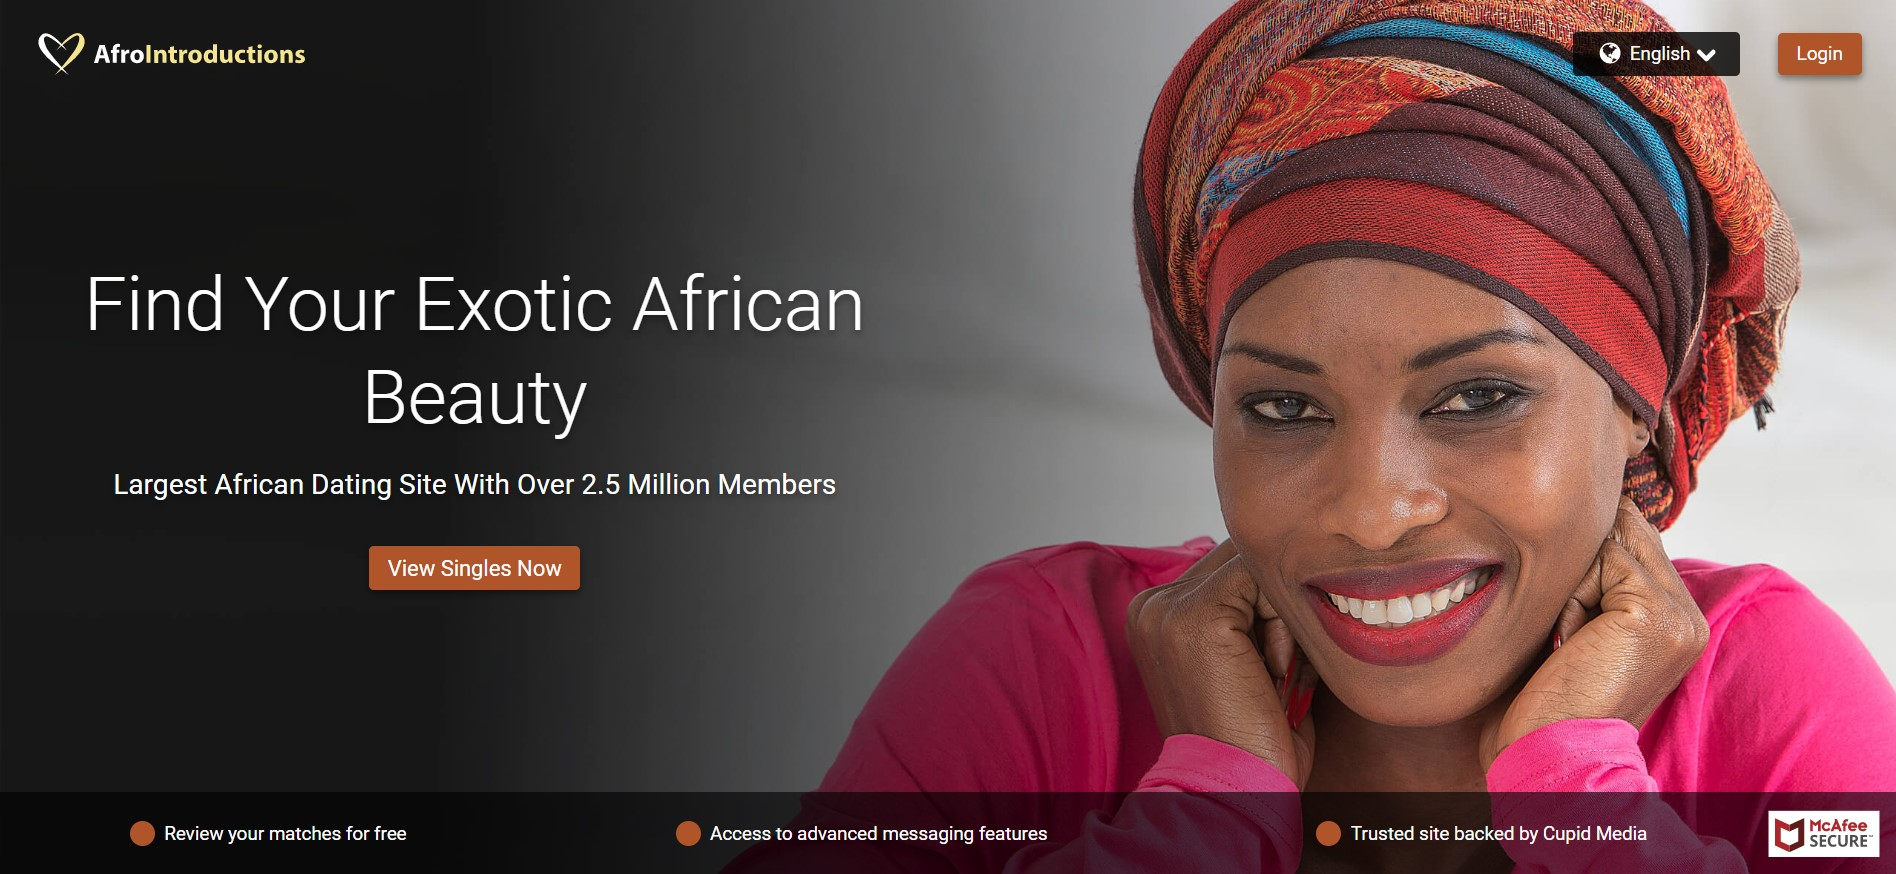 AfroIntroductions main page